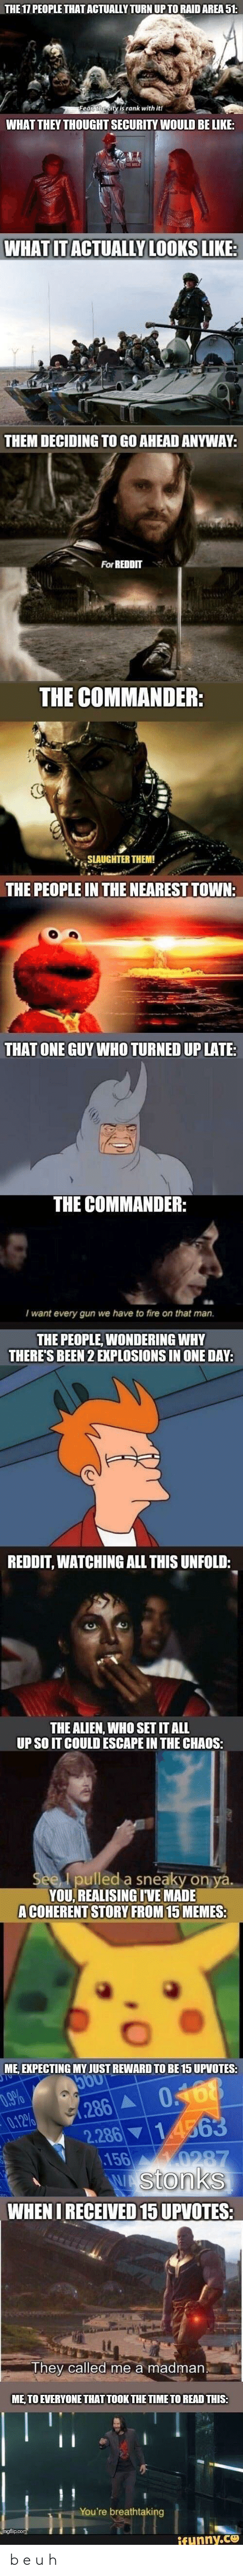 the commander: THE 17 PEOPLE THAT ACTUALLY TURN UP TO RAID AREA 51:  Fear the city is rank with it!  WHAT THEY THOUGHT SECURITY WOULD BE LIKE:  WHAT IT ACTUALLY LOOKS LIKE:  THEM DECIDING TO GO AHEAD ANYWAY:  For REDDIT  THE COMMANDER:  SLAUGHTER THEM!  THE PEOPLE IN THE NEAREST TOWN:  THAT ONE GUY WHO TURNED UP LATE:  THE COMMANDER:  I want every gun we have to fire on that man.  THE PEOPLE, WONDERING WHY  THERE'S BEEN 2 EXPLOSIONS IN ONE DAY:  REDDIT, WATCHING ALL THIS UNFOLD:  THE ALIEN, WHO SET IT ALL  UP SO IT COULD ESCAPE IN THE CHAOS:  See, I pulled a sneaky on ya.  YOU, REALISING IVE MADE  A COHERENT STORY FROM 15 MEMES:  ME, EXPECTING MY JUST REWARD TO BE 15 UPVOTES:  500  0.9%  0.12%  0.168  1.286 A  14563  2.286  156  0287  Wstonks  WHEN I RECEIVED 15 UPVOTES:  They called me a madman.  ME, TO EVERYONE THAT TOOK THE TIME TO READ THIS:  You're breathtaking  umgflip.com  ifunny.co b e u h